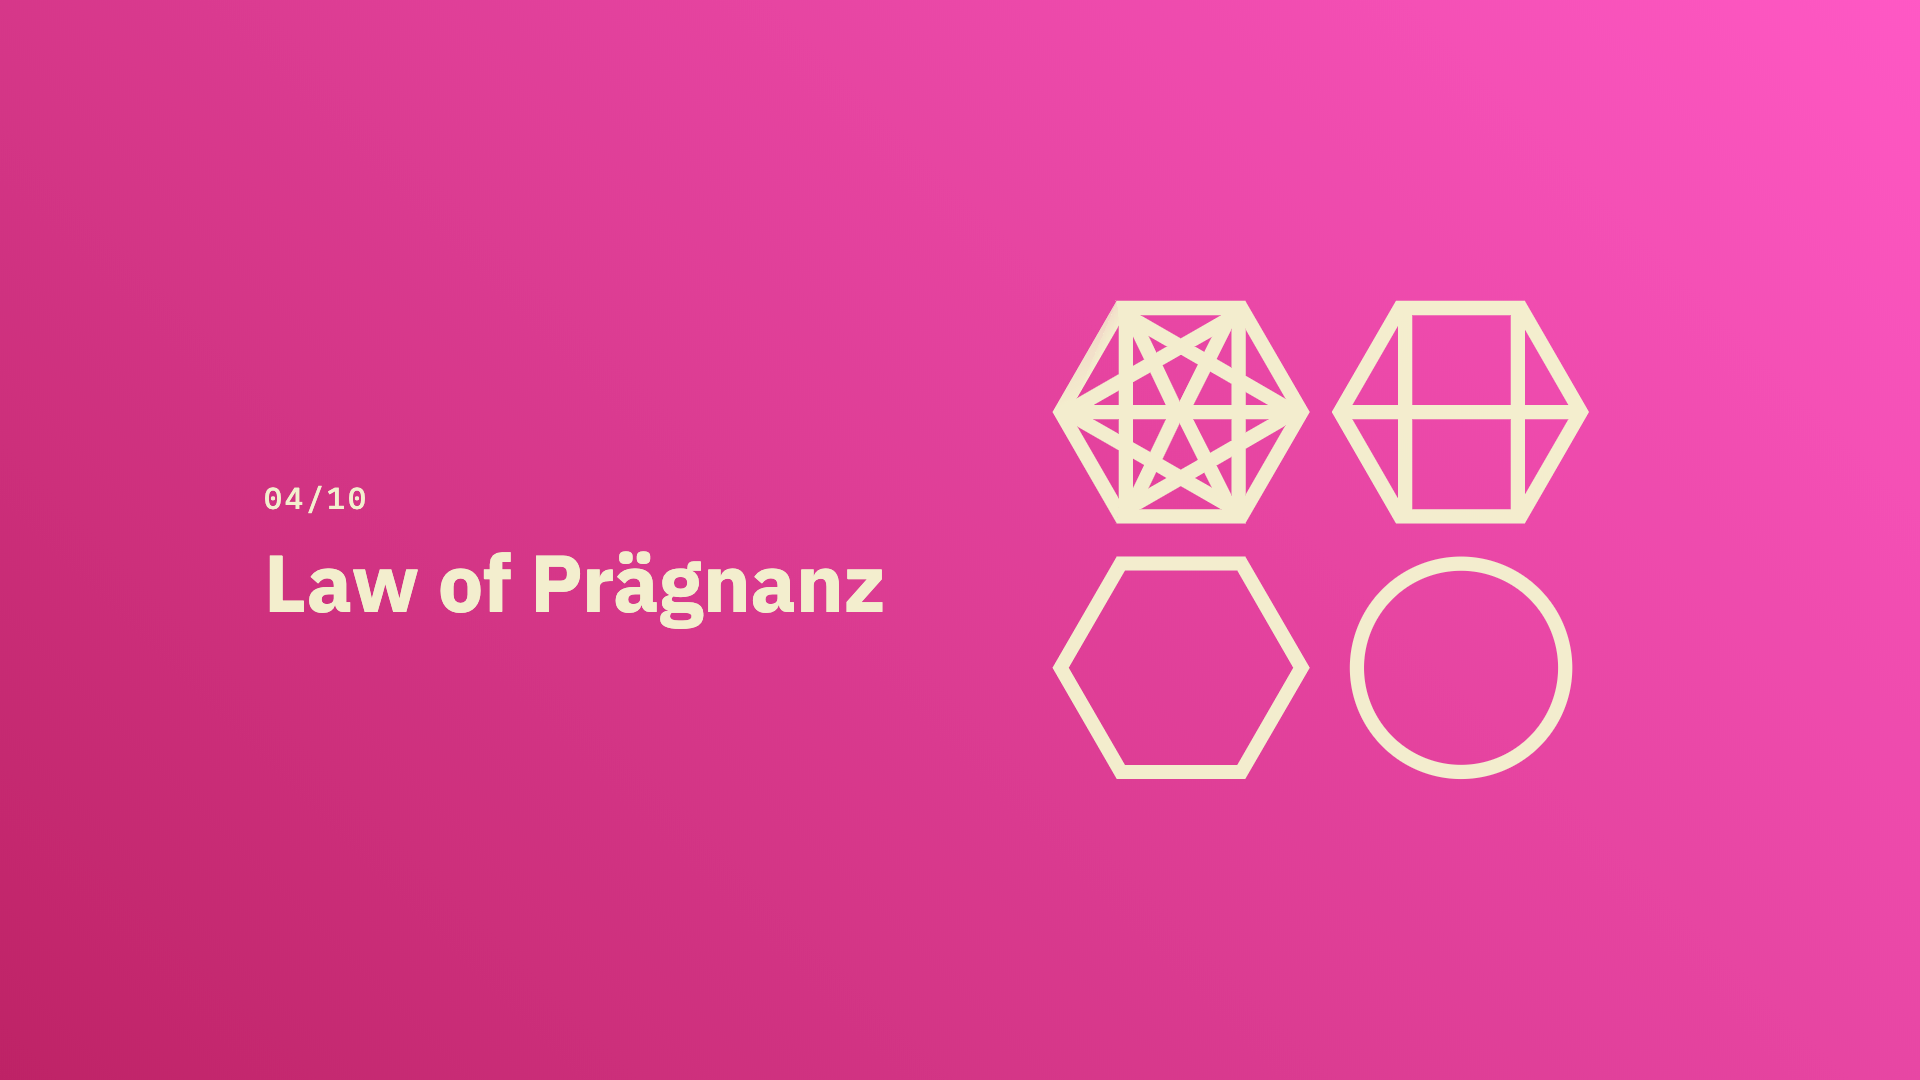 Law of Prägnanz - Source: lawsofux.com